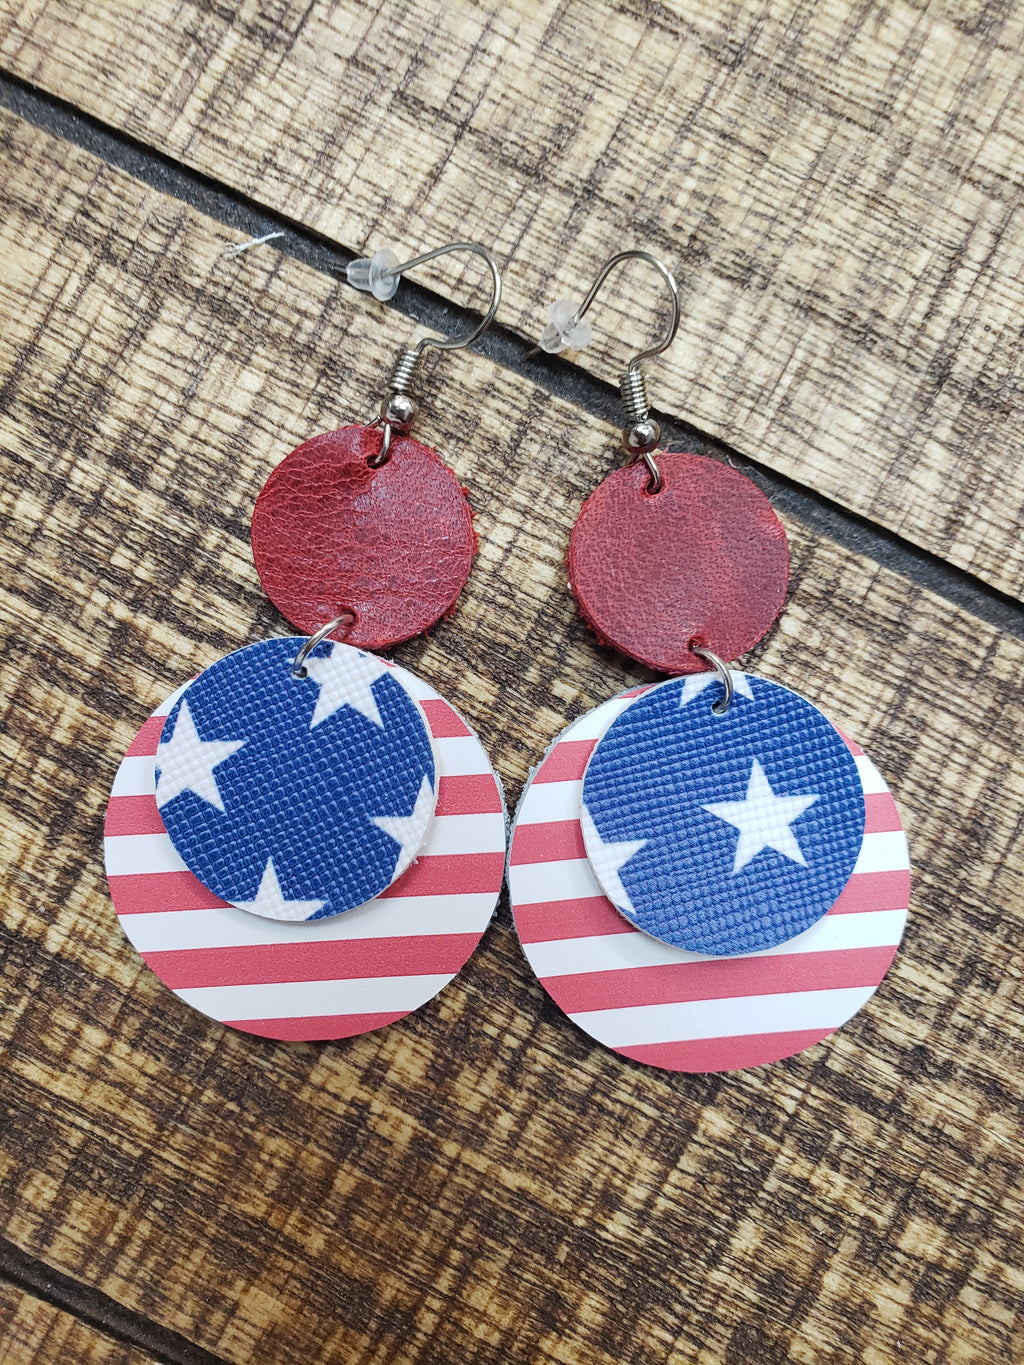 Red White Blue Leather Earrings Stars & Stripes